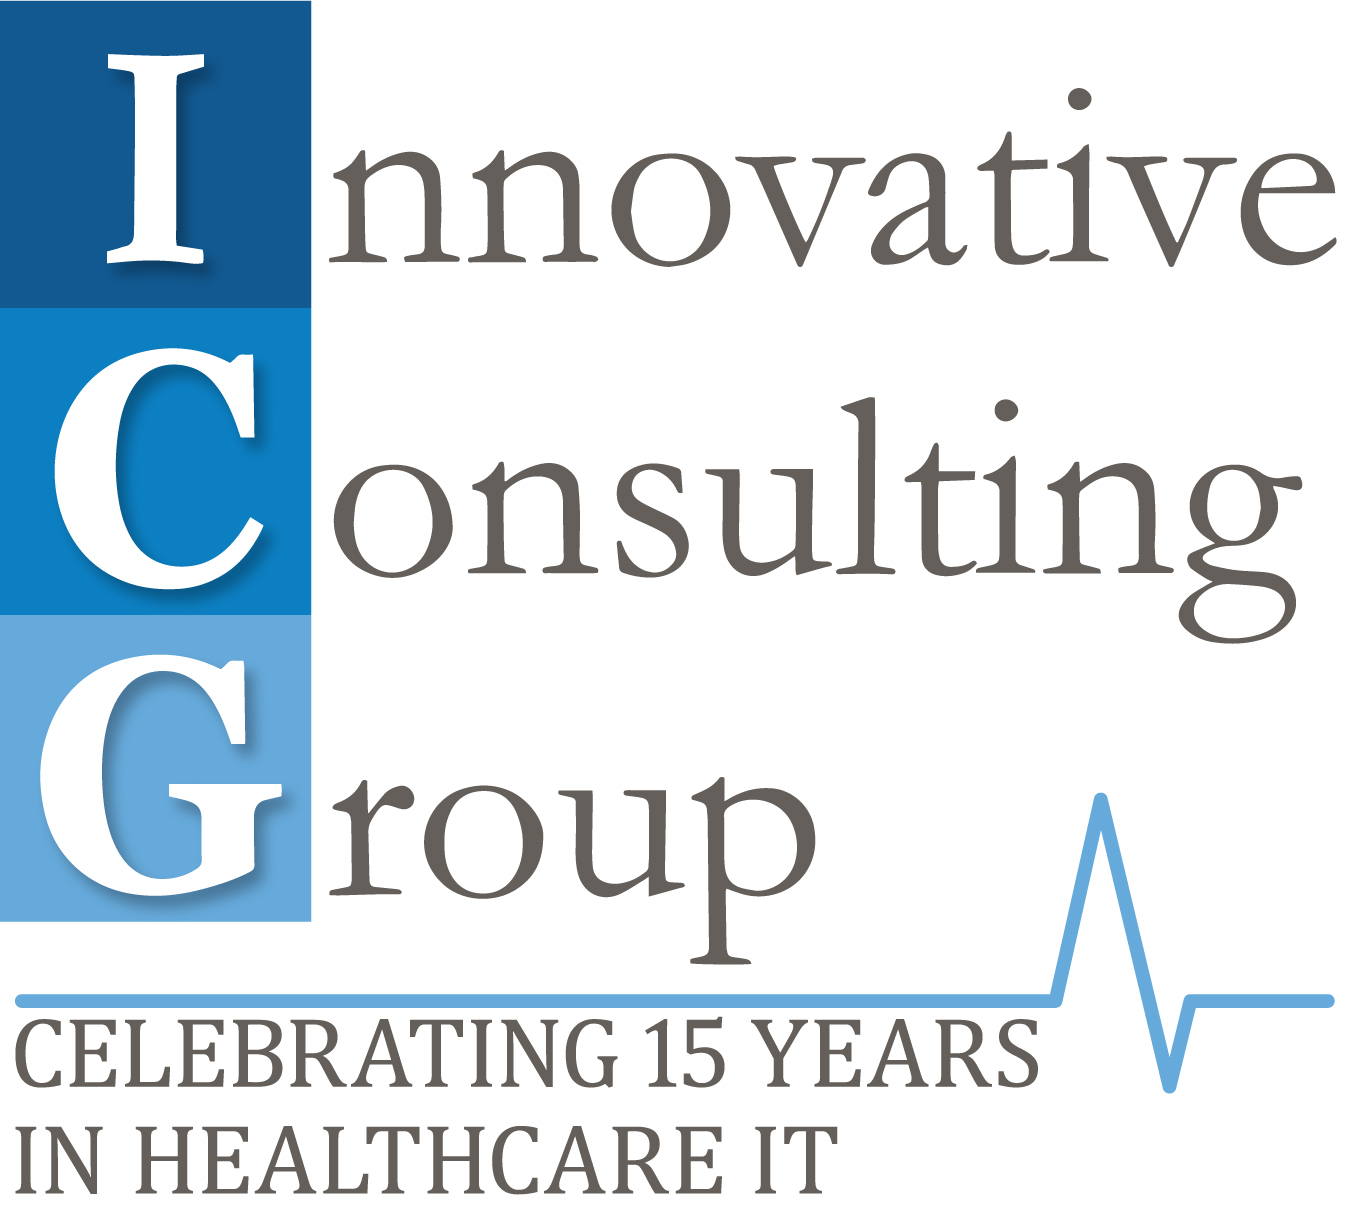 Innovative Consulting Group logo